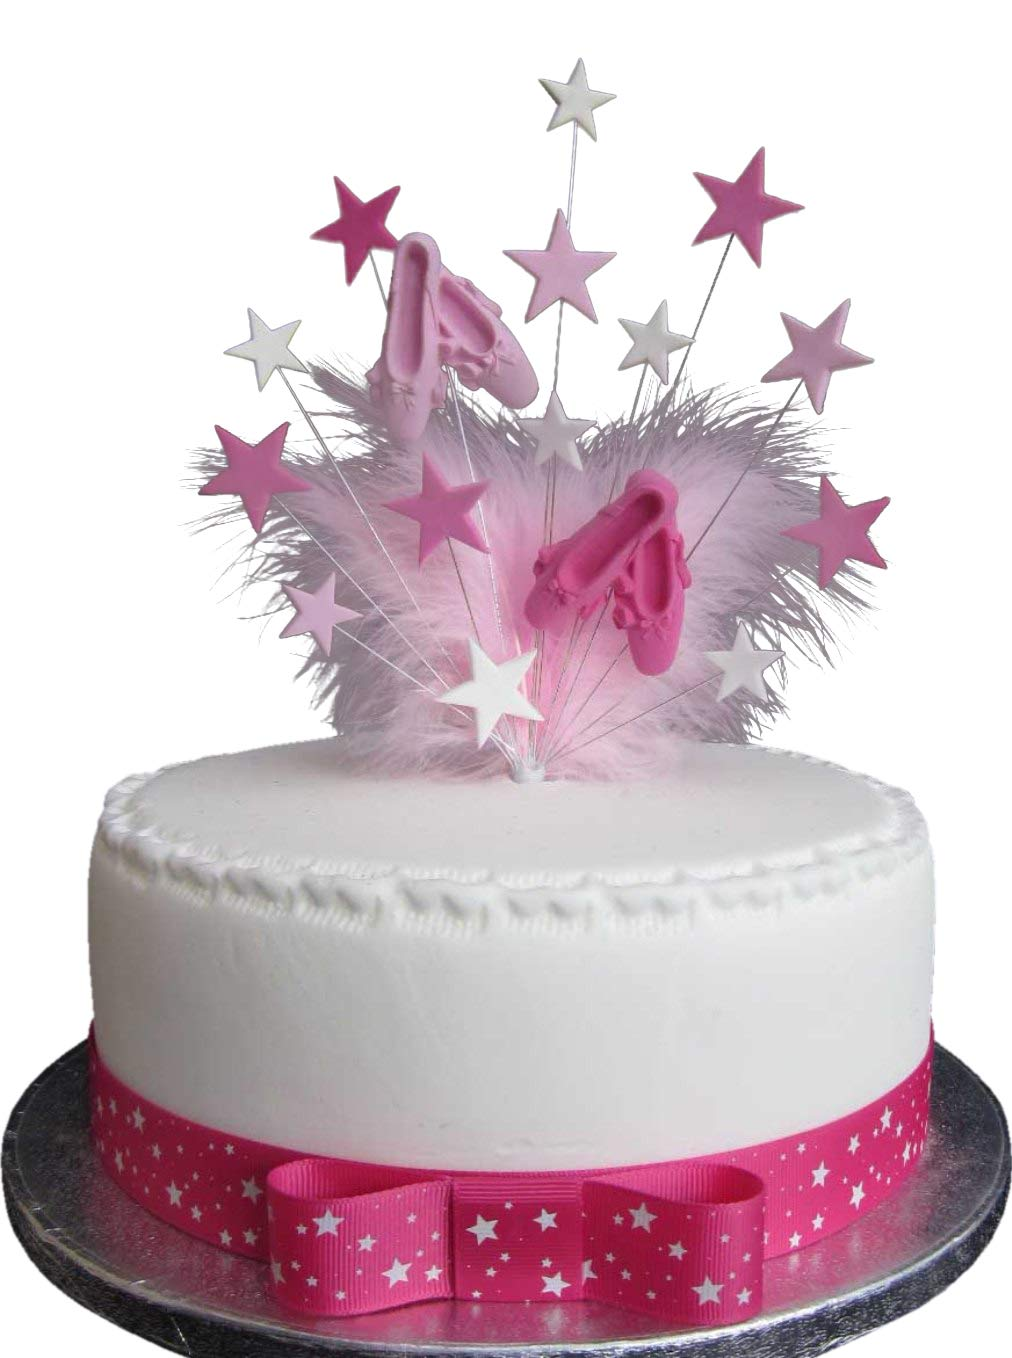 Cool Ballet Birthday Cake Topper With Marabou Feathers Ideal For A 20Cm Funny Birthday Cards Online Overcheapnameinfo